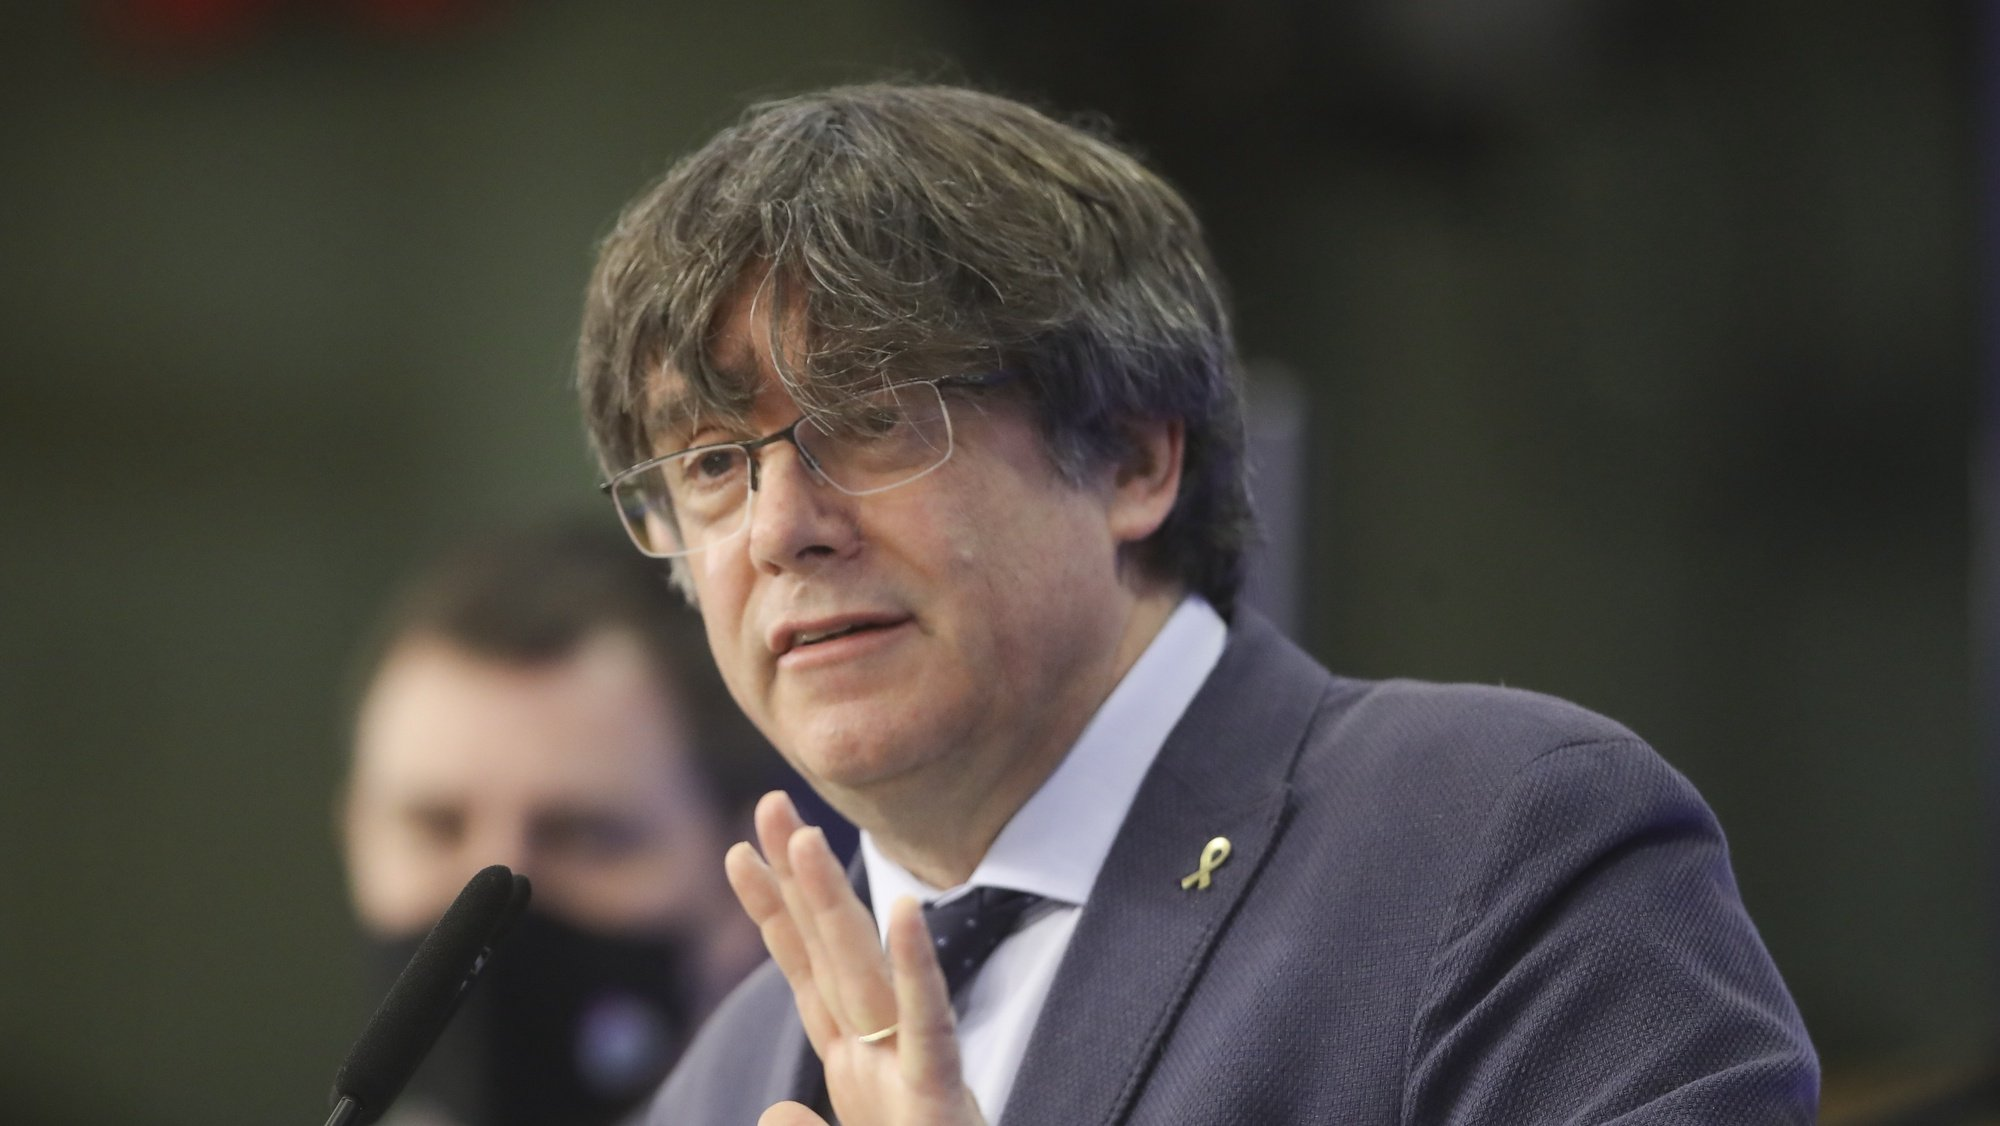 epa09033314 Former members of the Catalan government, now members of European Parliament Carles Puigdemont and Antoni Comin i Oliveres (L) attend a news conference on the lift of parliamentary immunity procedure by European Parliament in Brussels, Belgium, 24 February 2021.  EPA/OLIVIER HOSLET